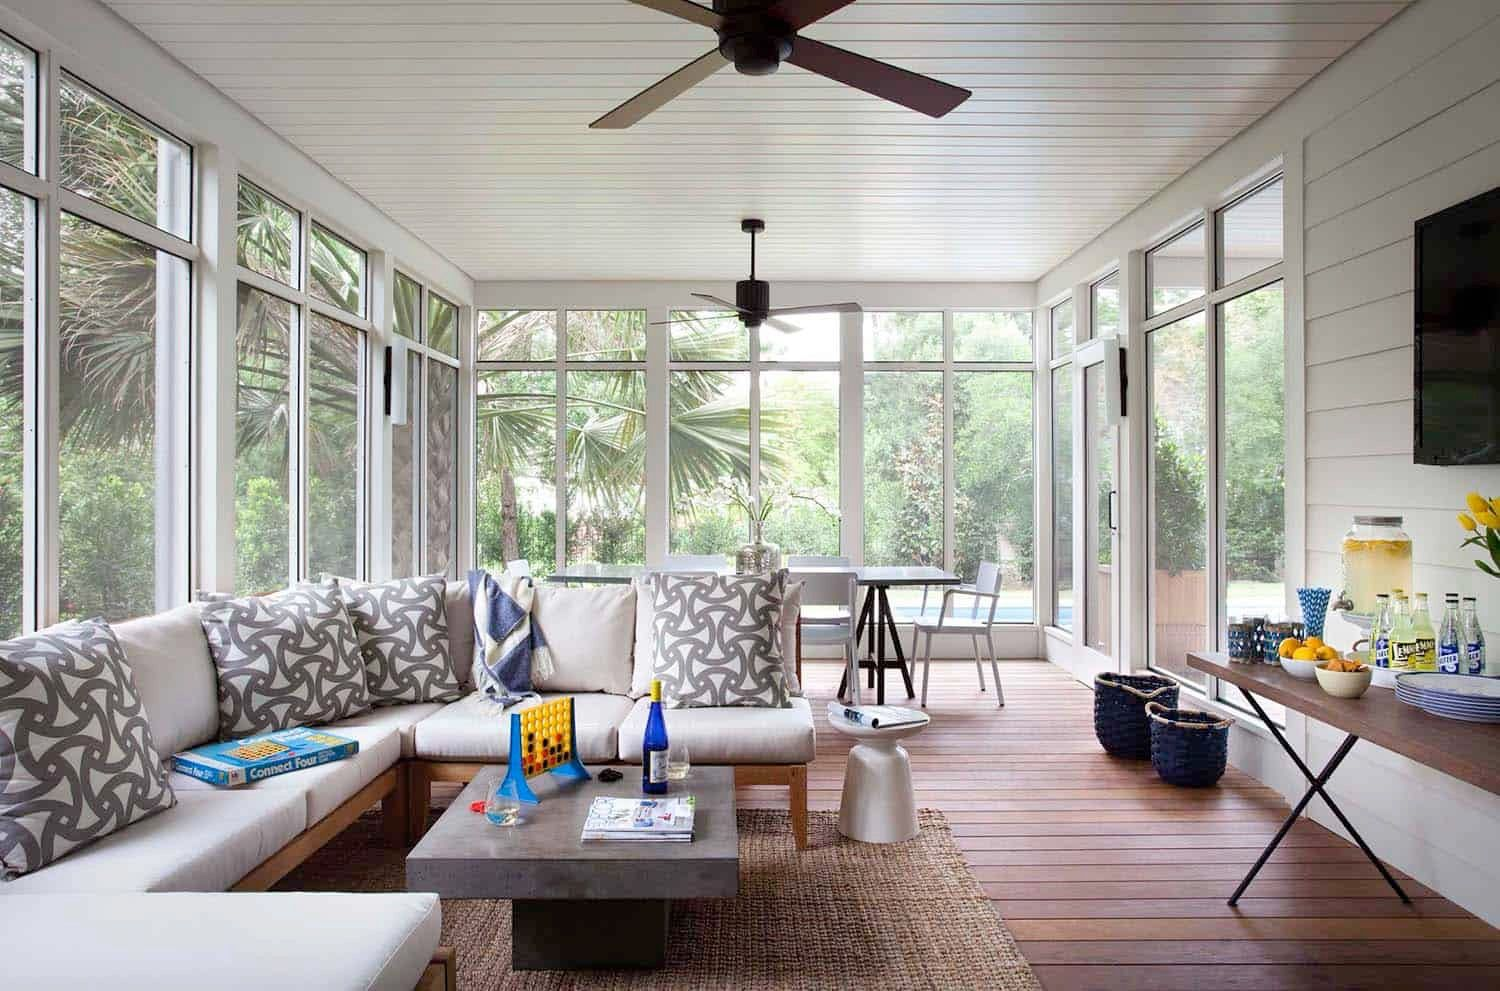 sp2 Great screened porch ideas to inspire you